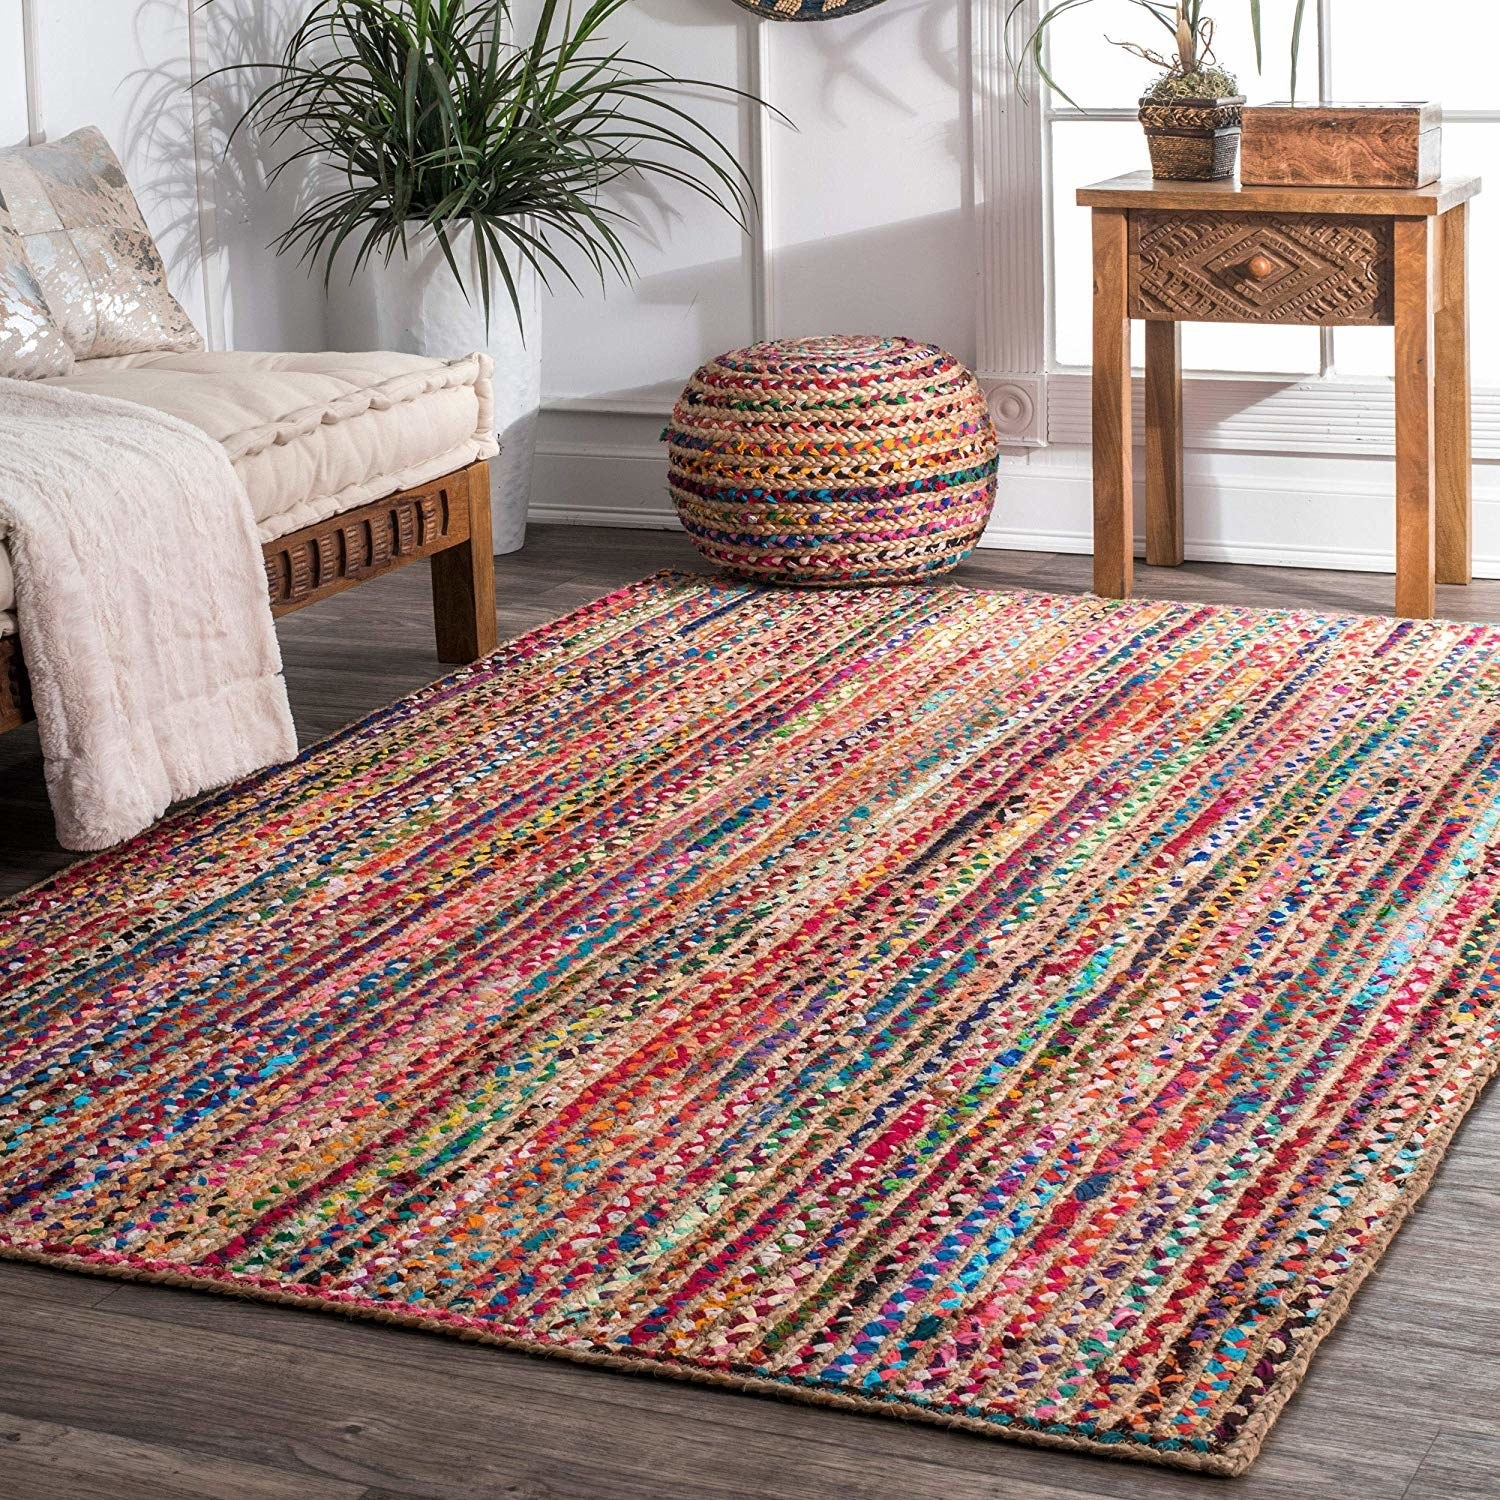 A multi-coloured braided cotton and jute rug